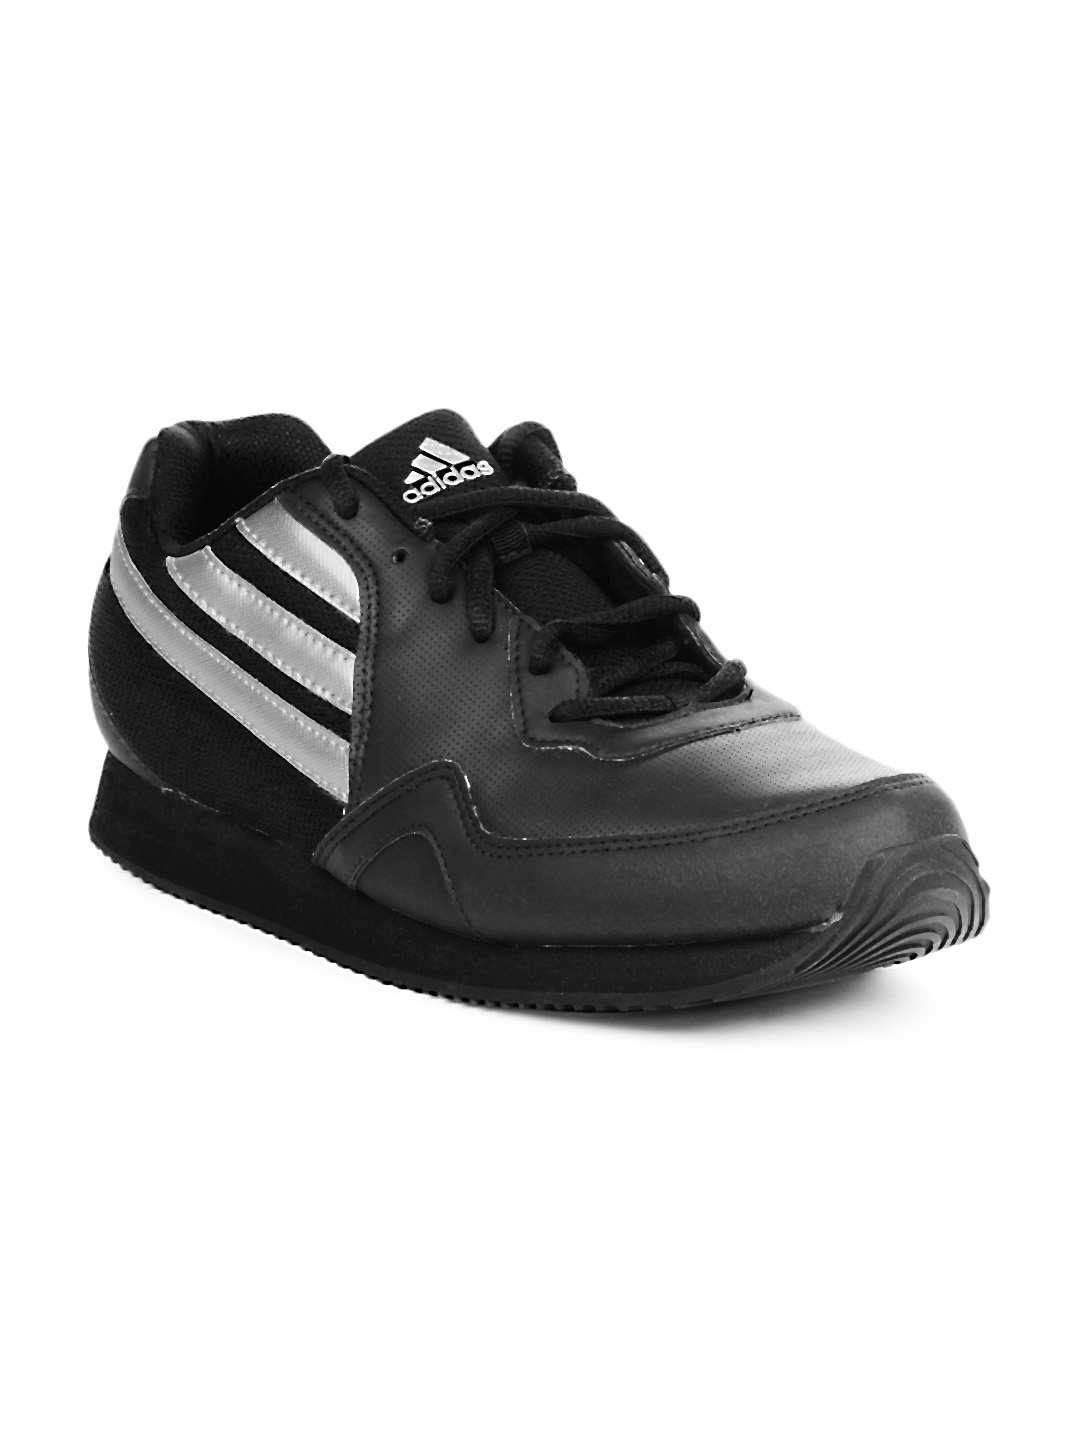 Adidas Men Black Hangkok Sports Shoes